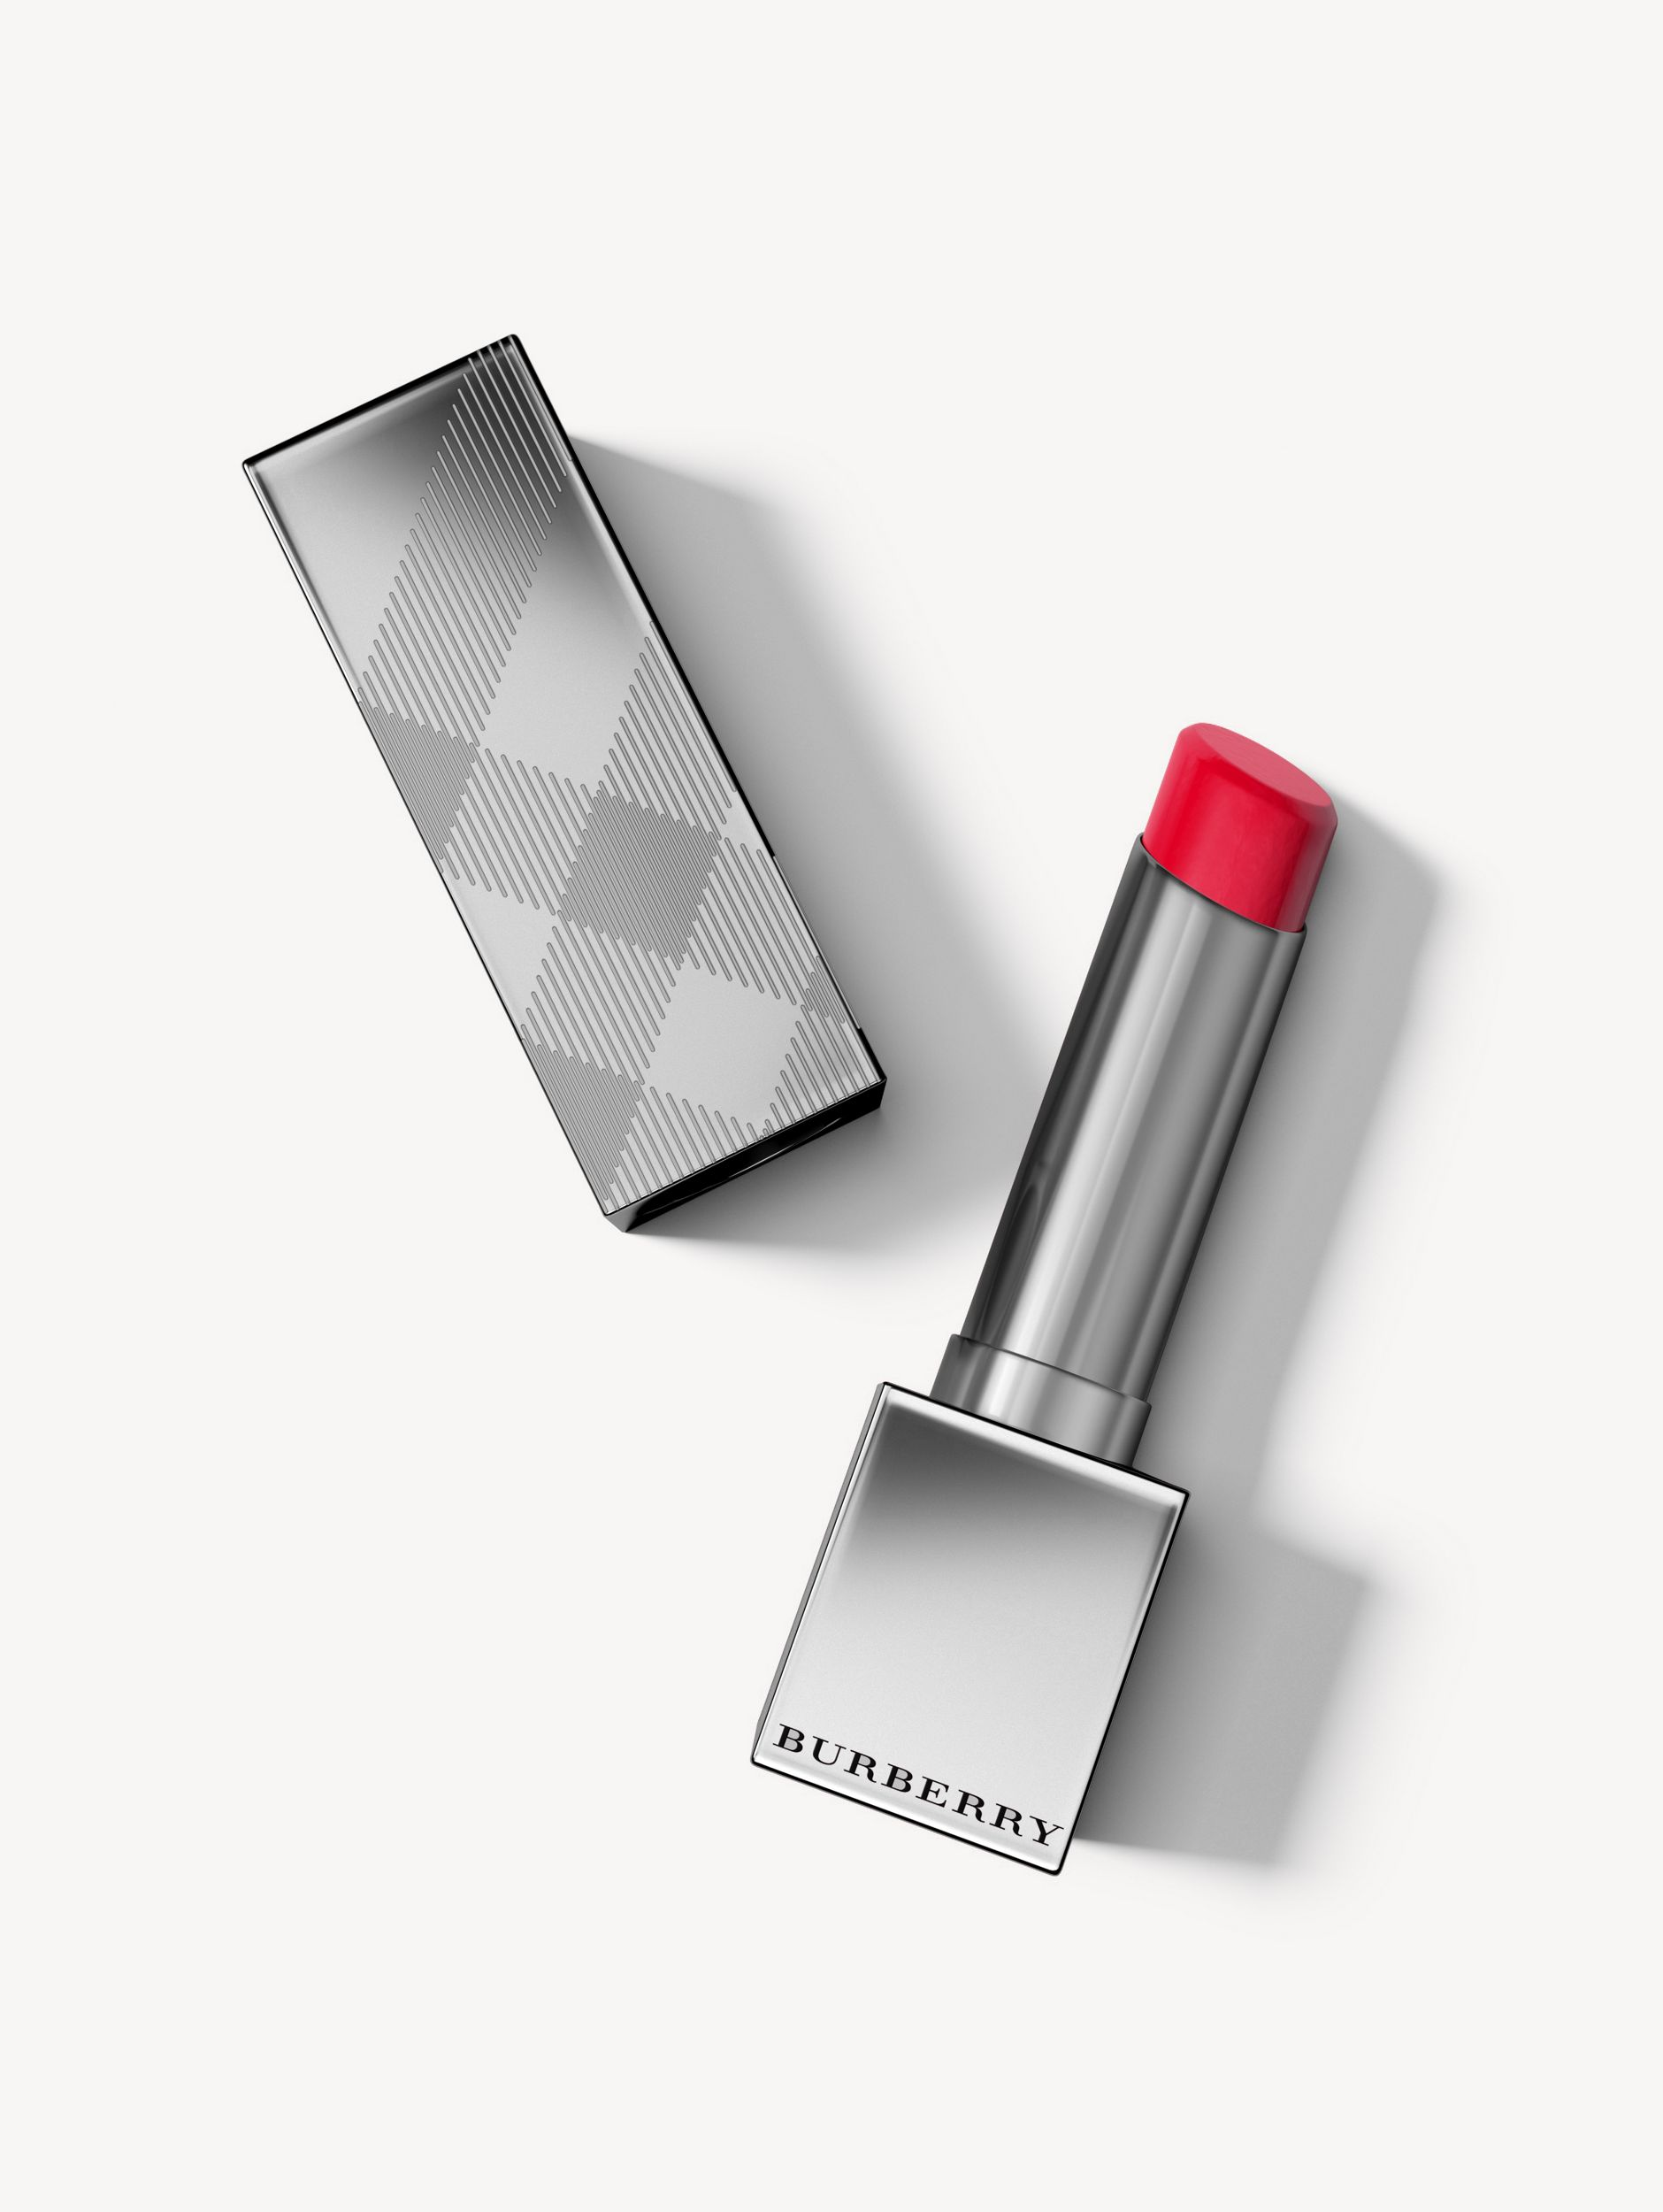 Burberry Kisses Sheer – Poppy Red No.309 - Women | Burberry - 1